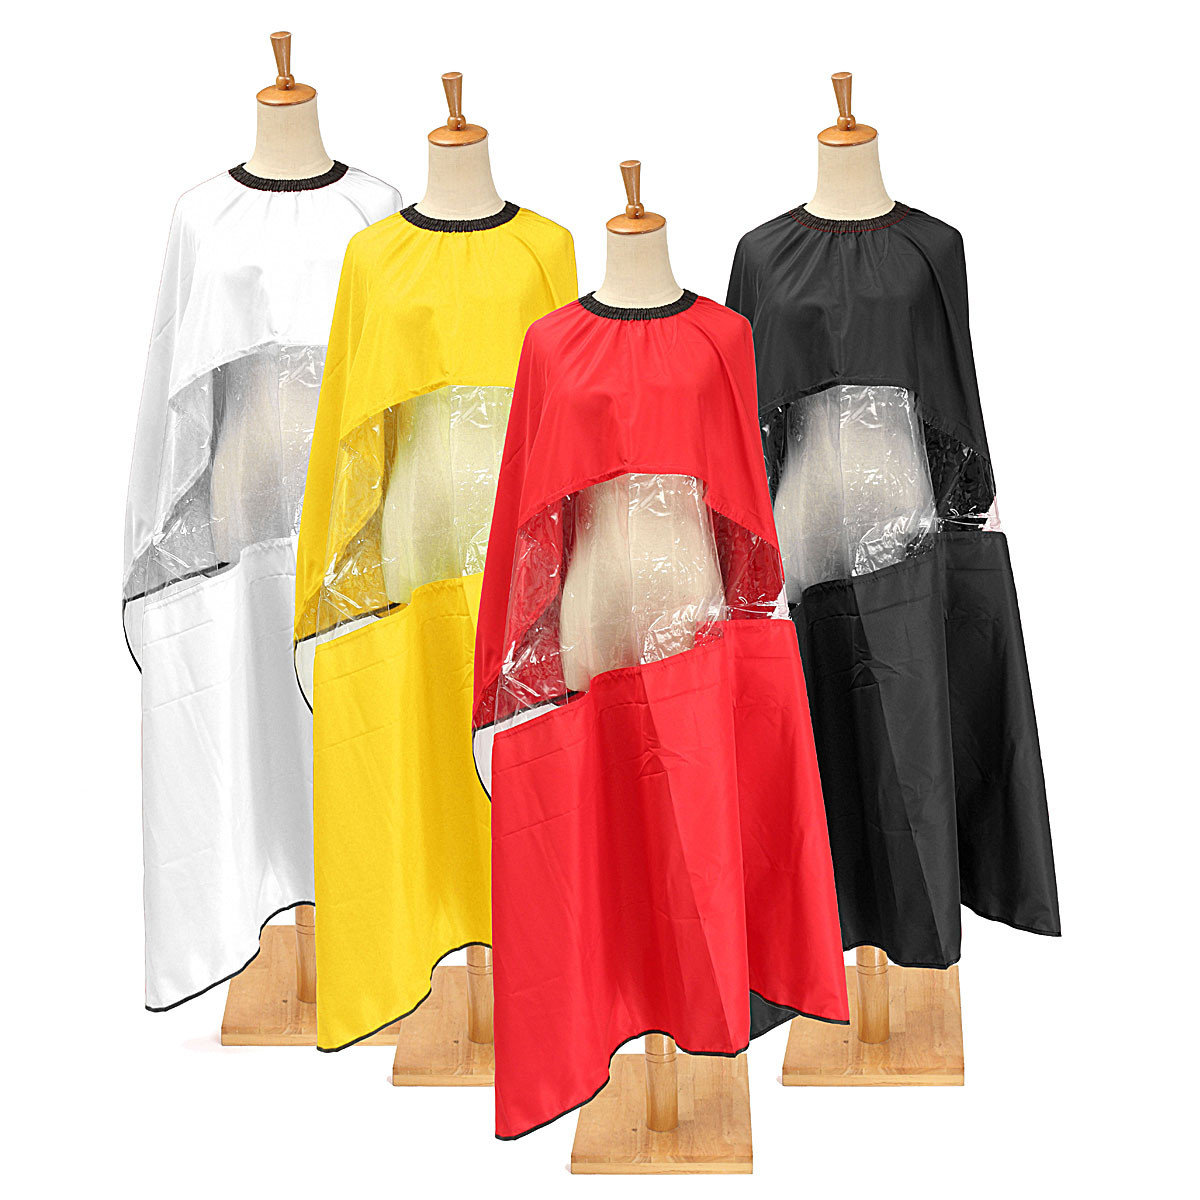 Adjustable Waterproof Cape Gown Viewing Salon Barber Coloring Hairdressing Hair Cut